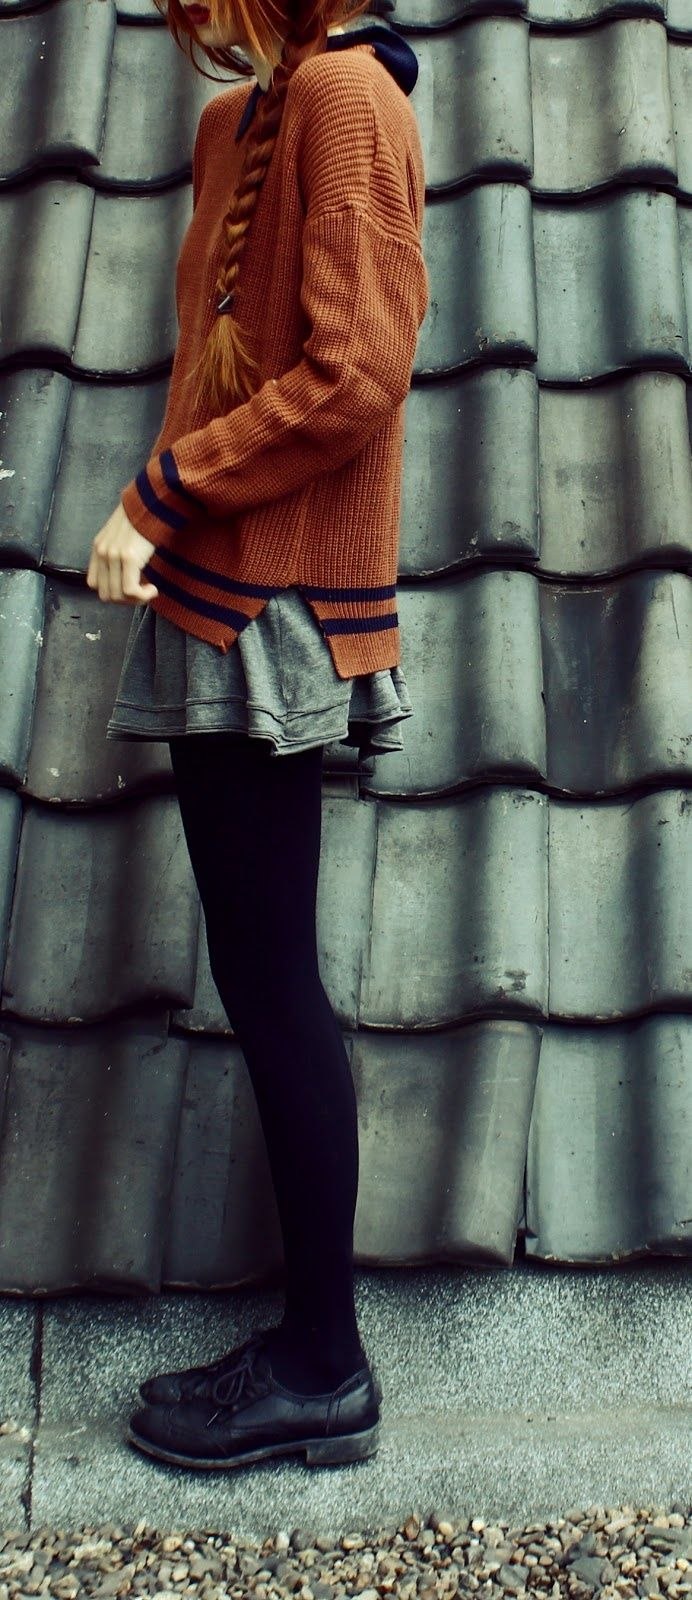 Grunge: knit sweater, skirt, black tights.